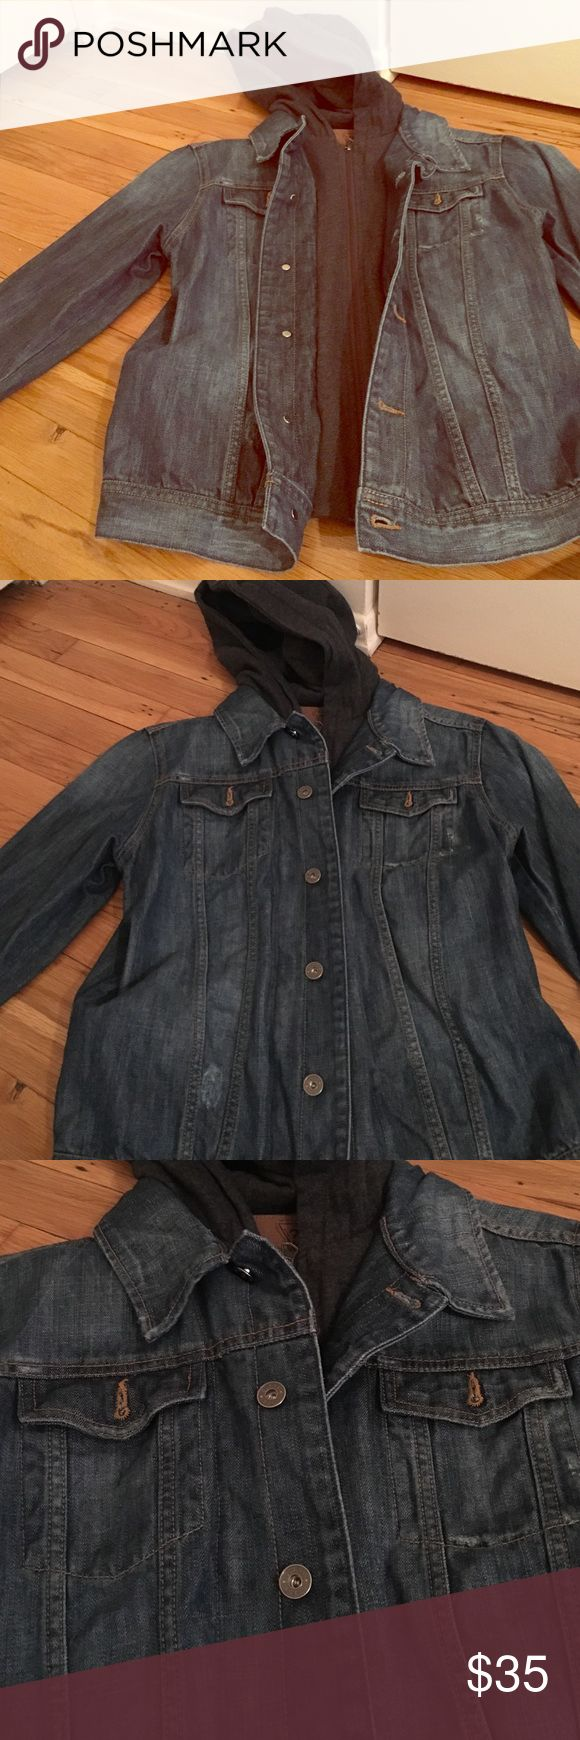 Jean jacket with hood Jean jacket with attached sweater & hood Guess Jackets & Coats Jean Jackets